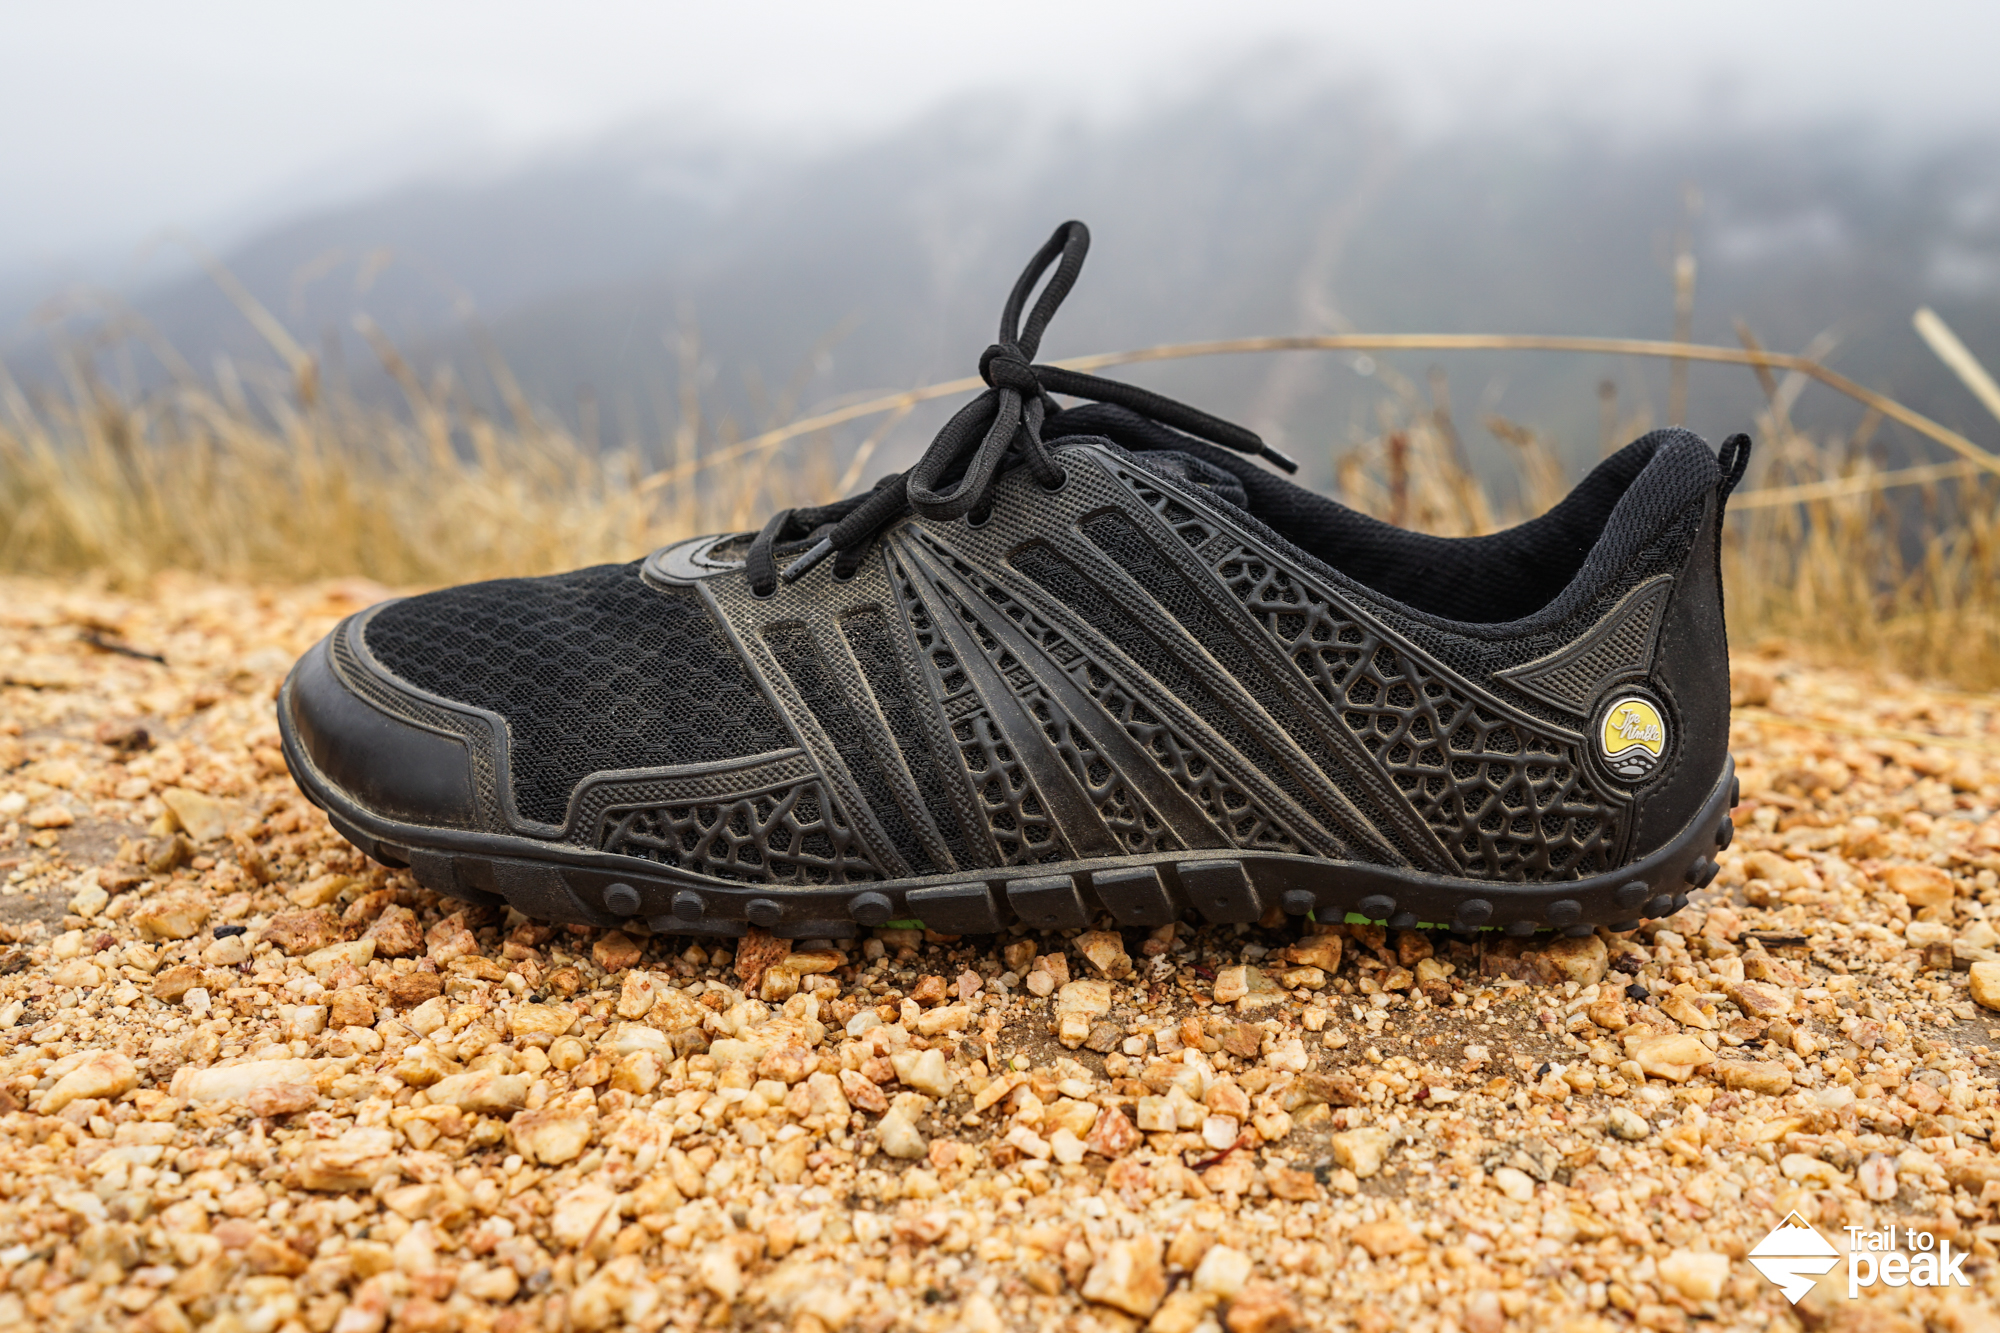 Gear Review: Joe Nimble trailToes